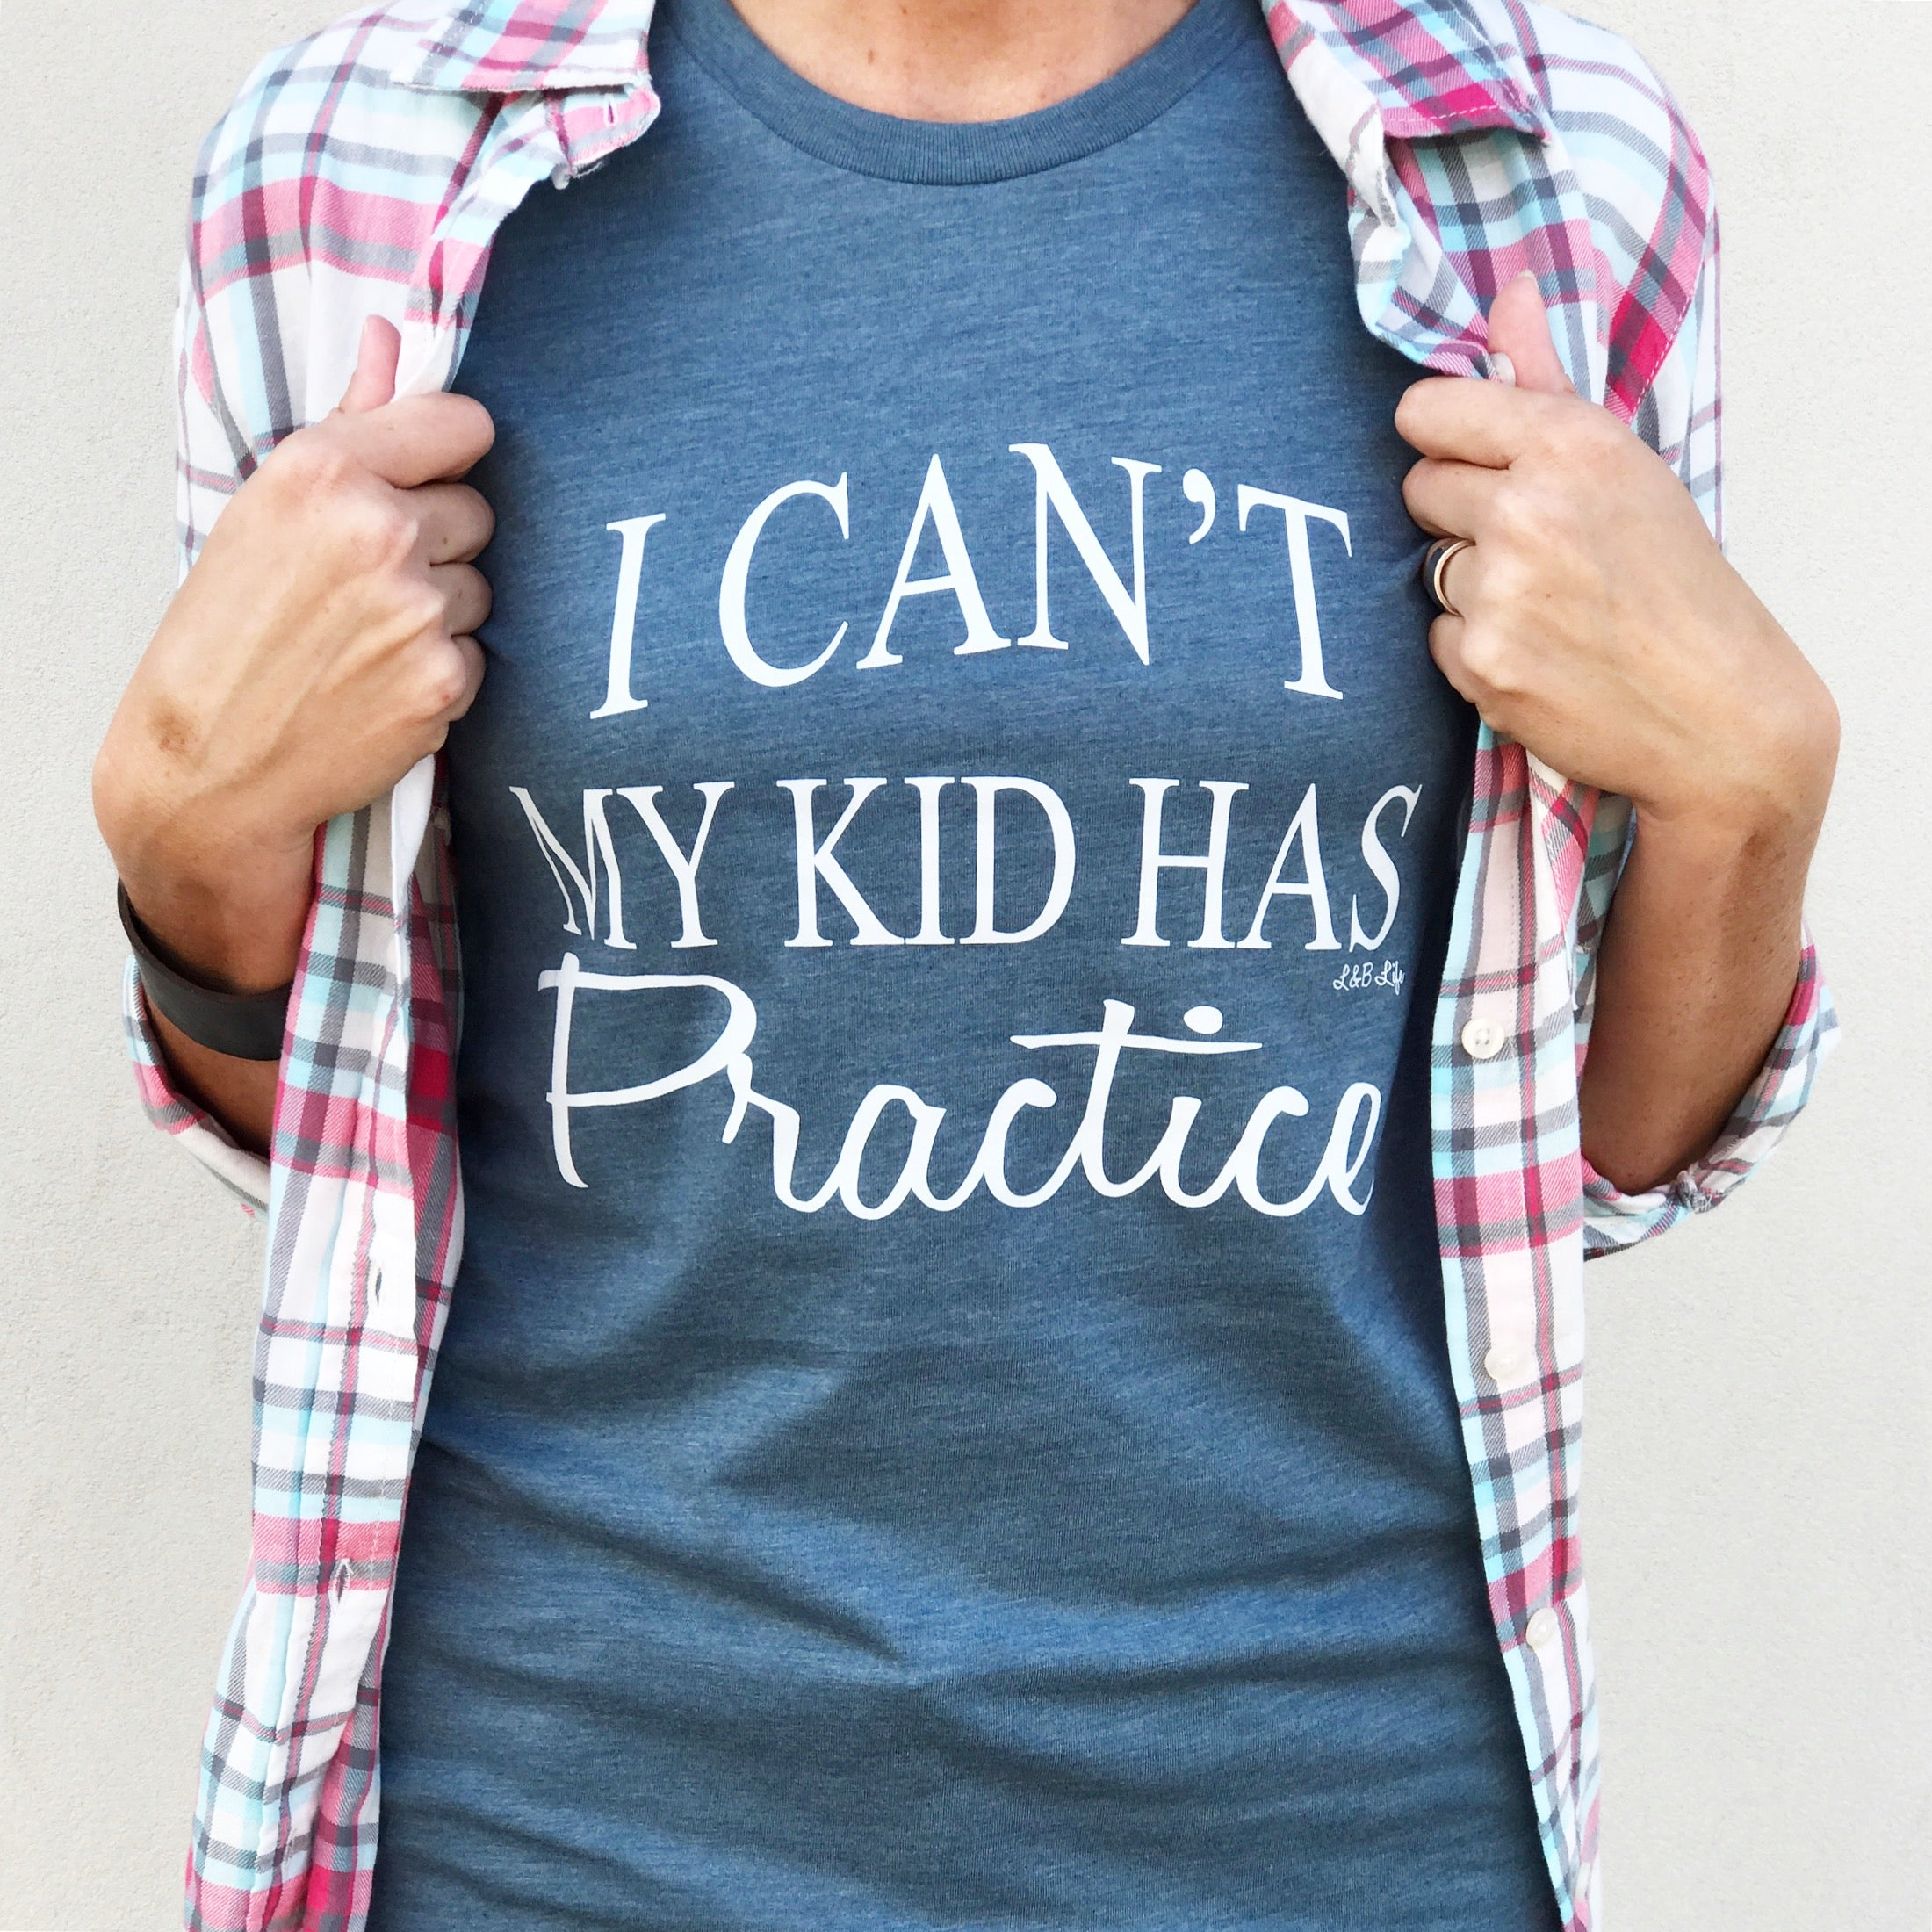 b6ebf766a I Can't My Kid Has Practice T-Shirt | Aunt Lillie Bells